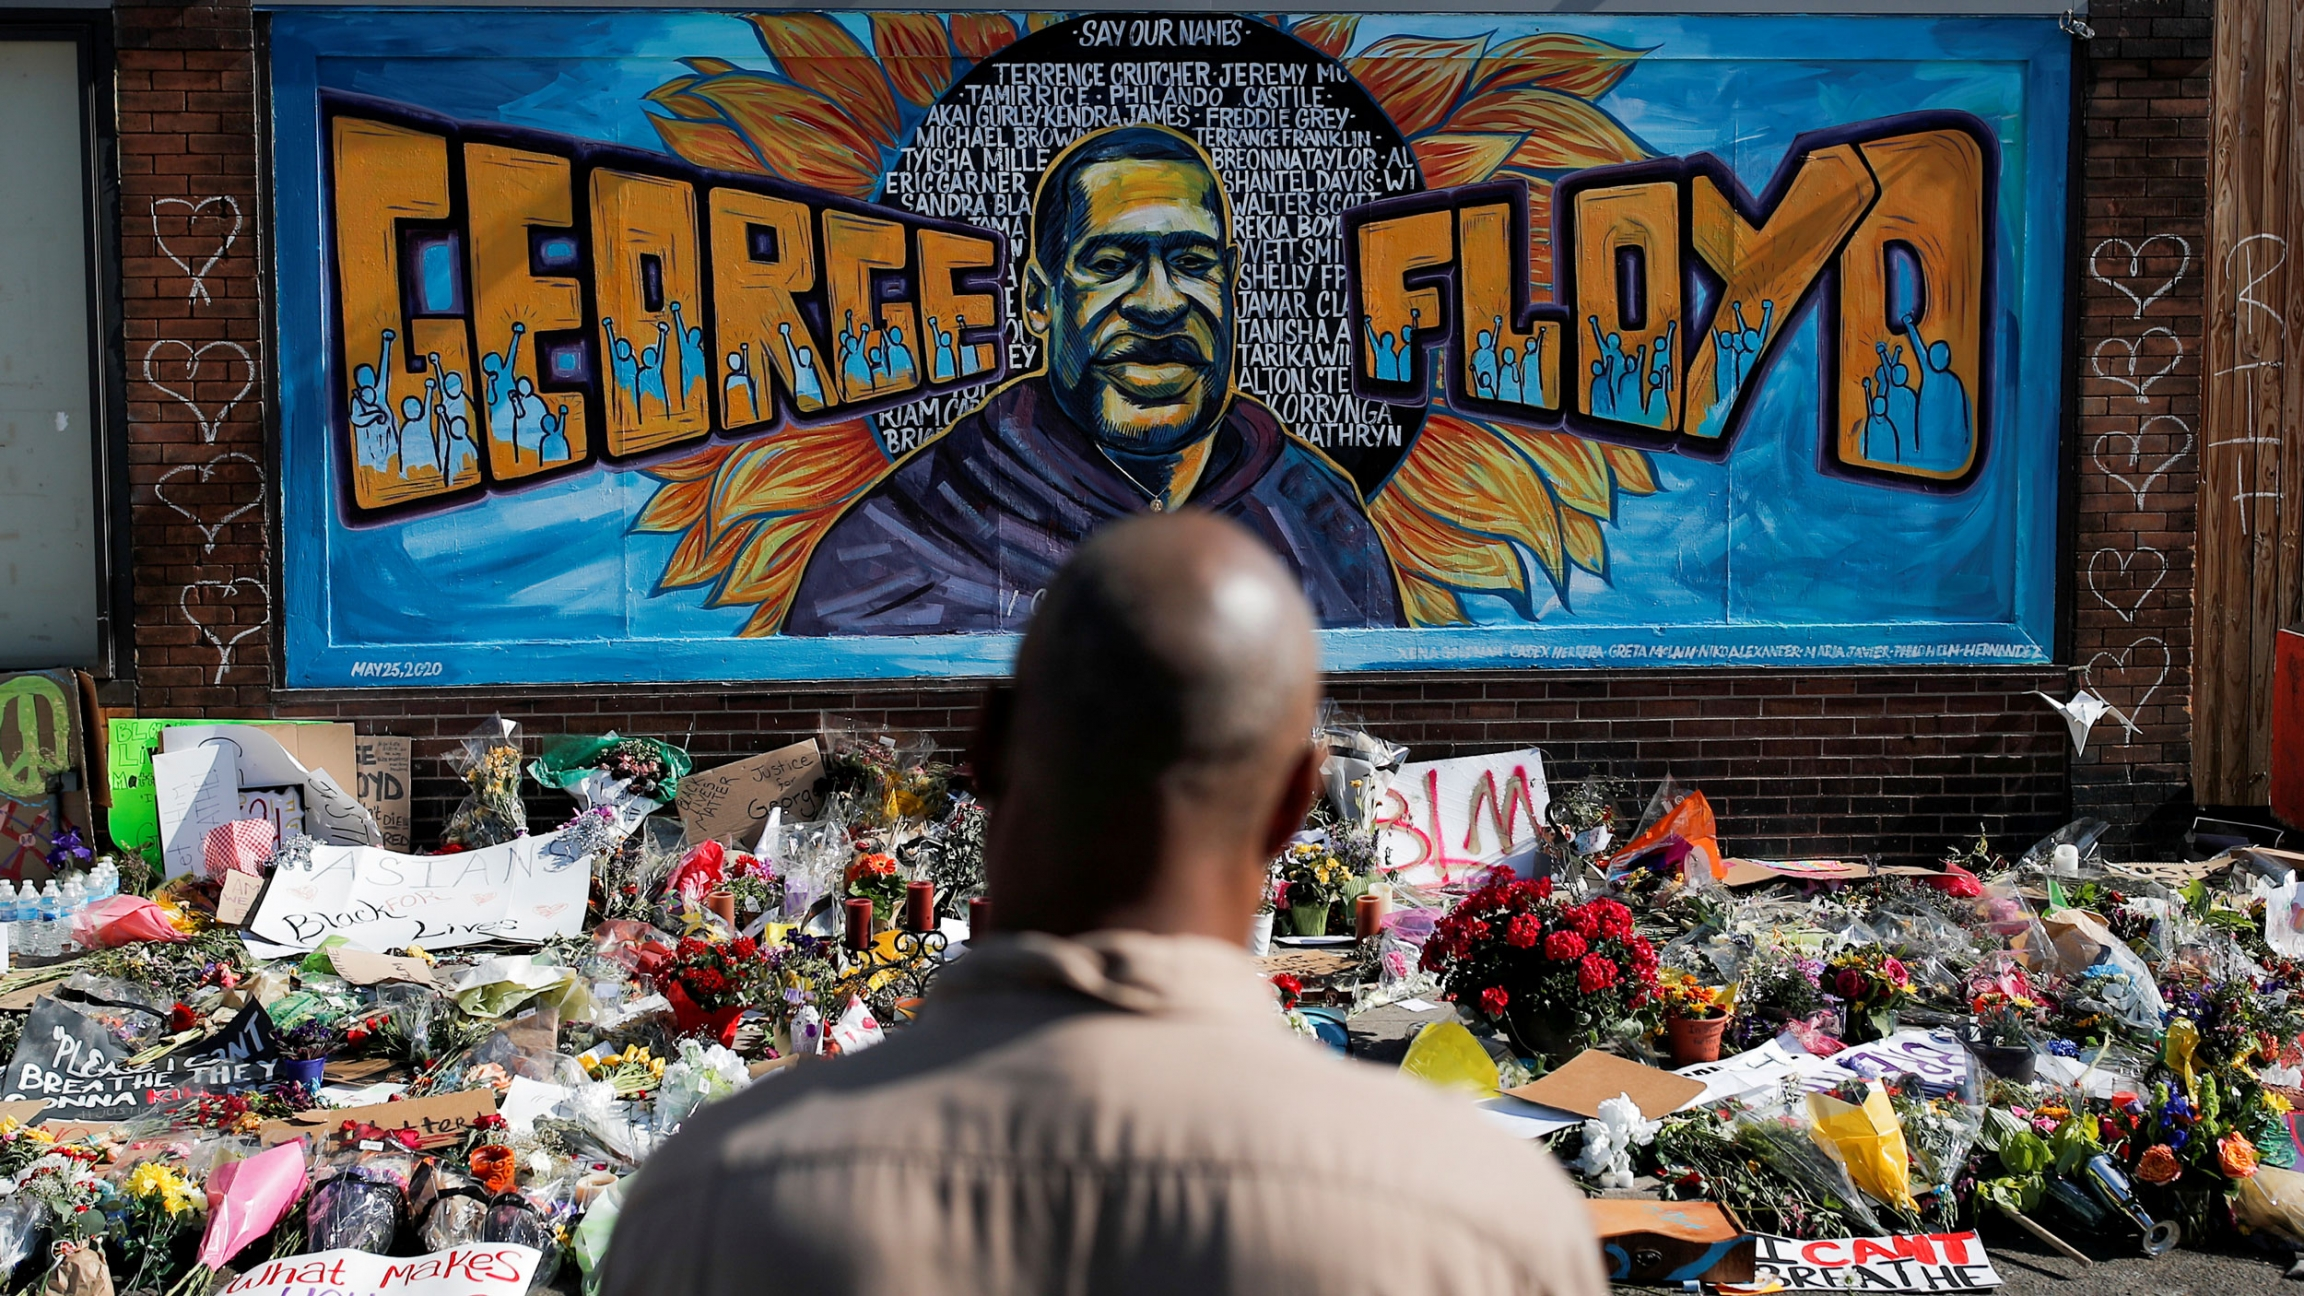 A black man stands in front of a mural honoring George Floyd and other black Americans killed by law enforcement